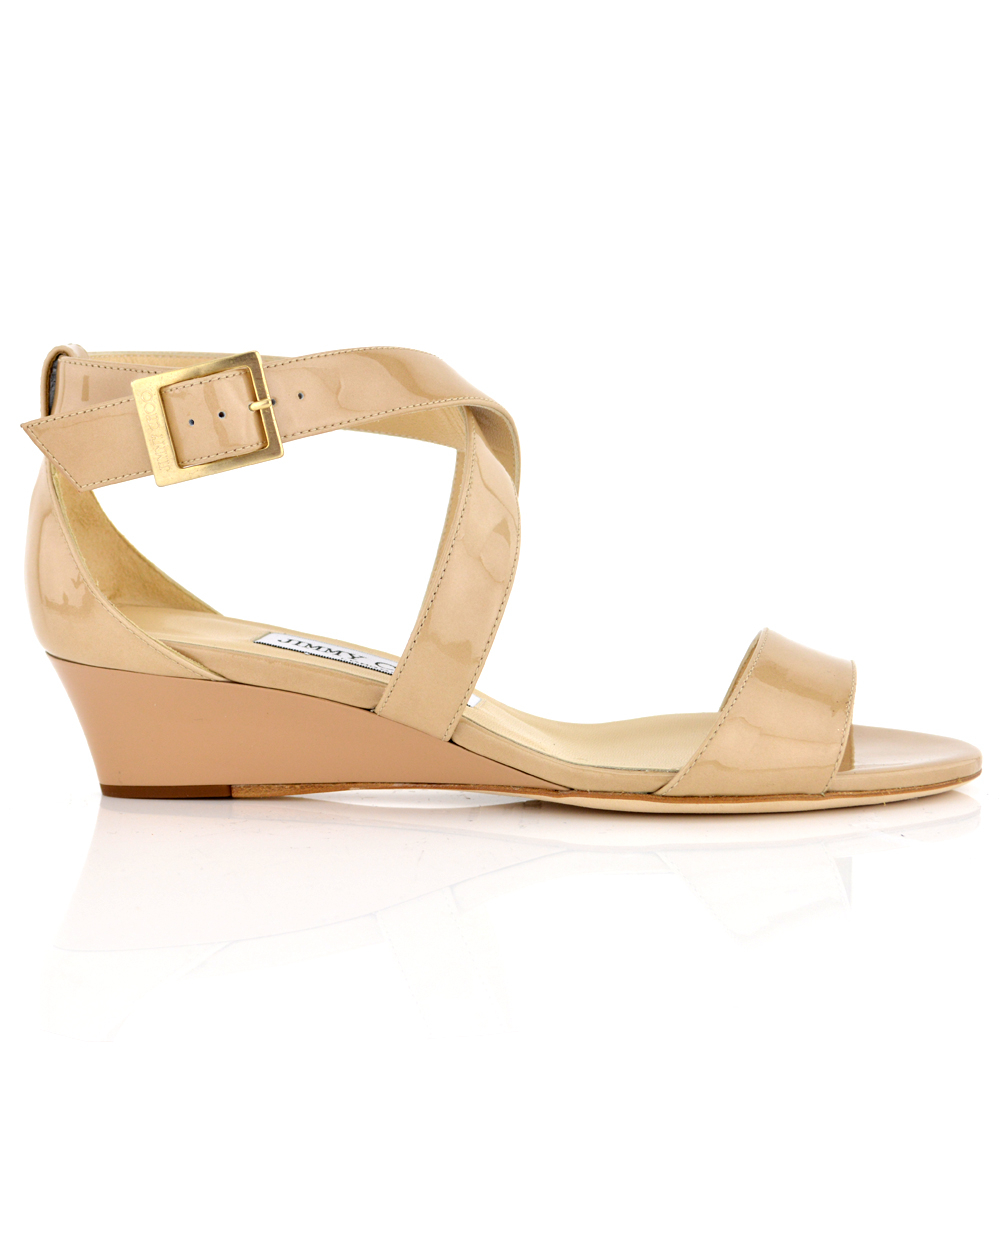 10948d78f73 Lyst - Jimmy Choo Chiara Nude Patent Wedge in Natural